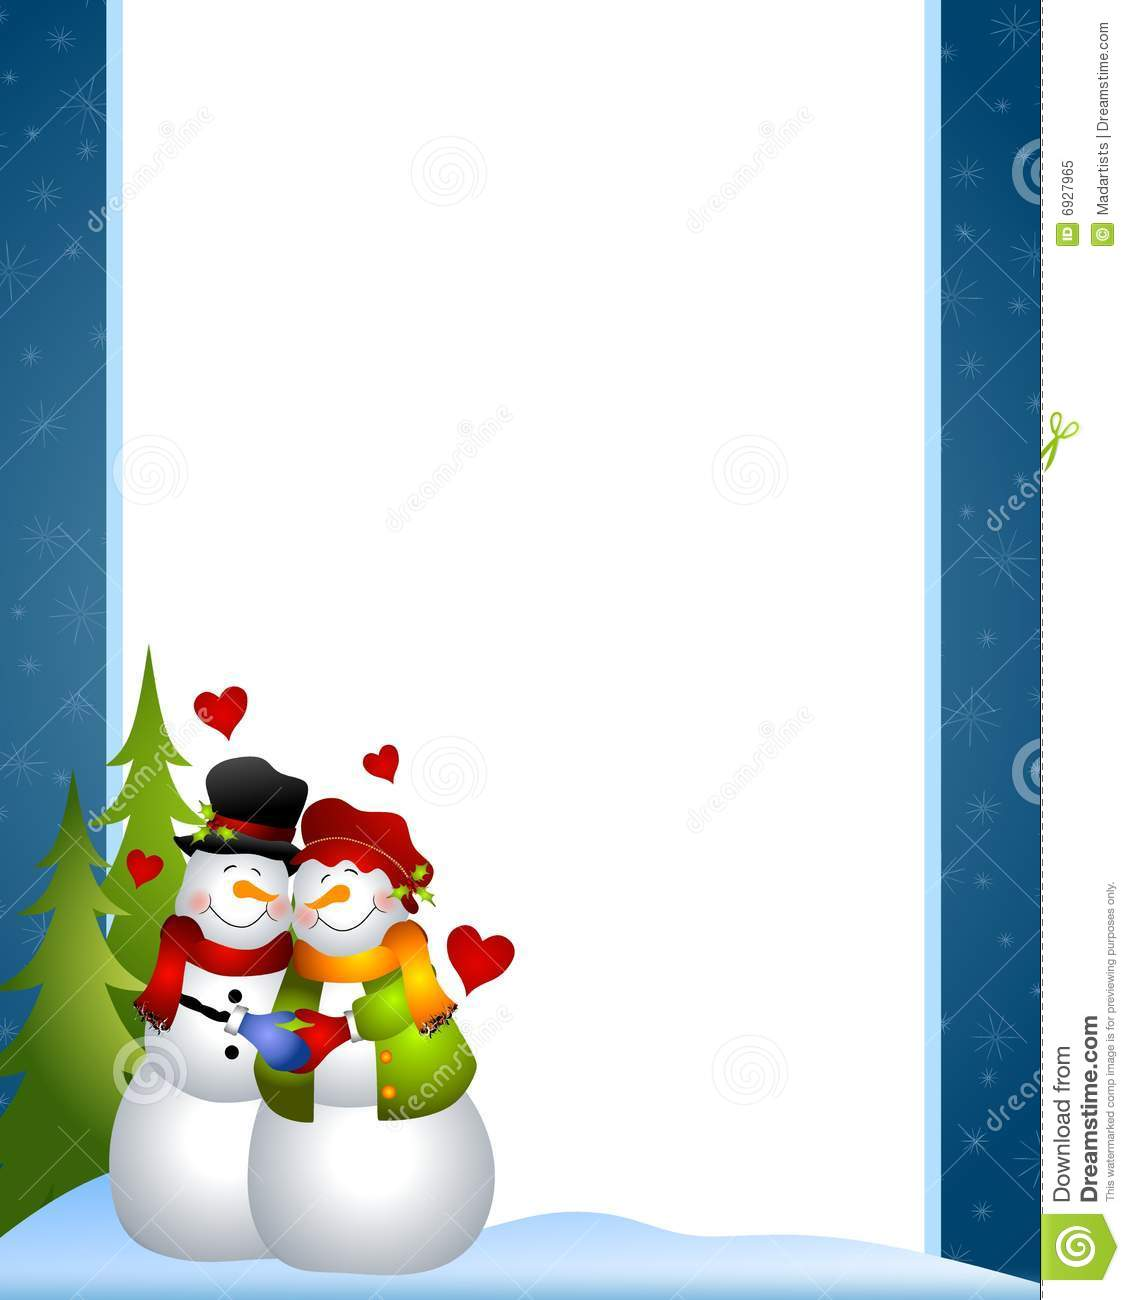 clip art illustration of a snowman and snow woman couple embracing ...